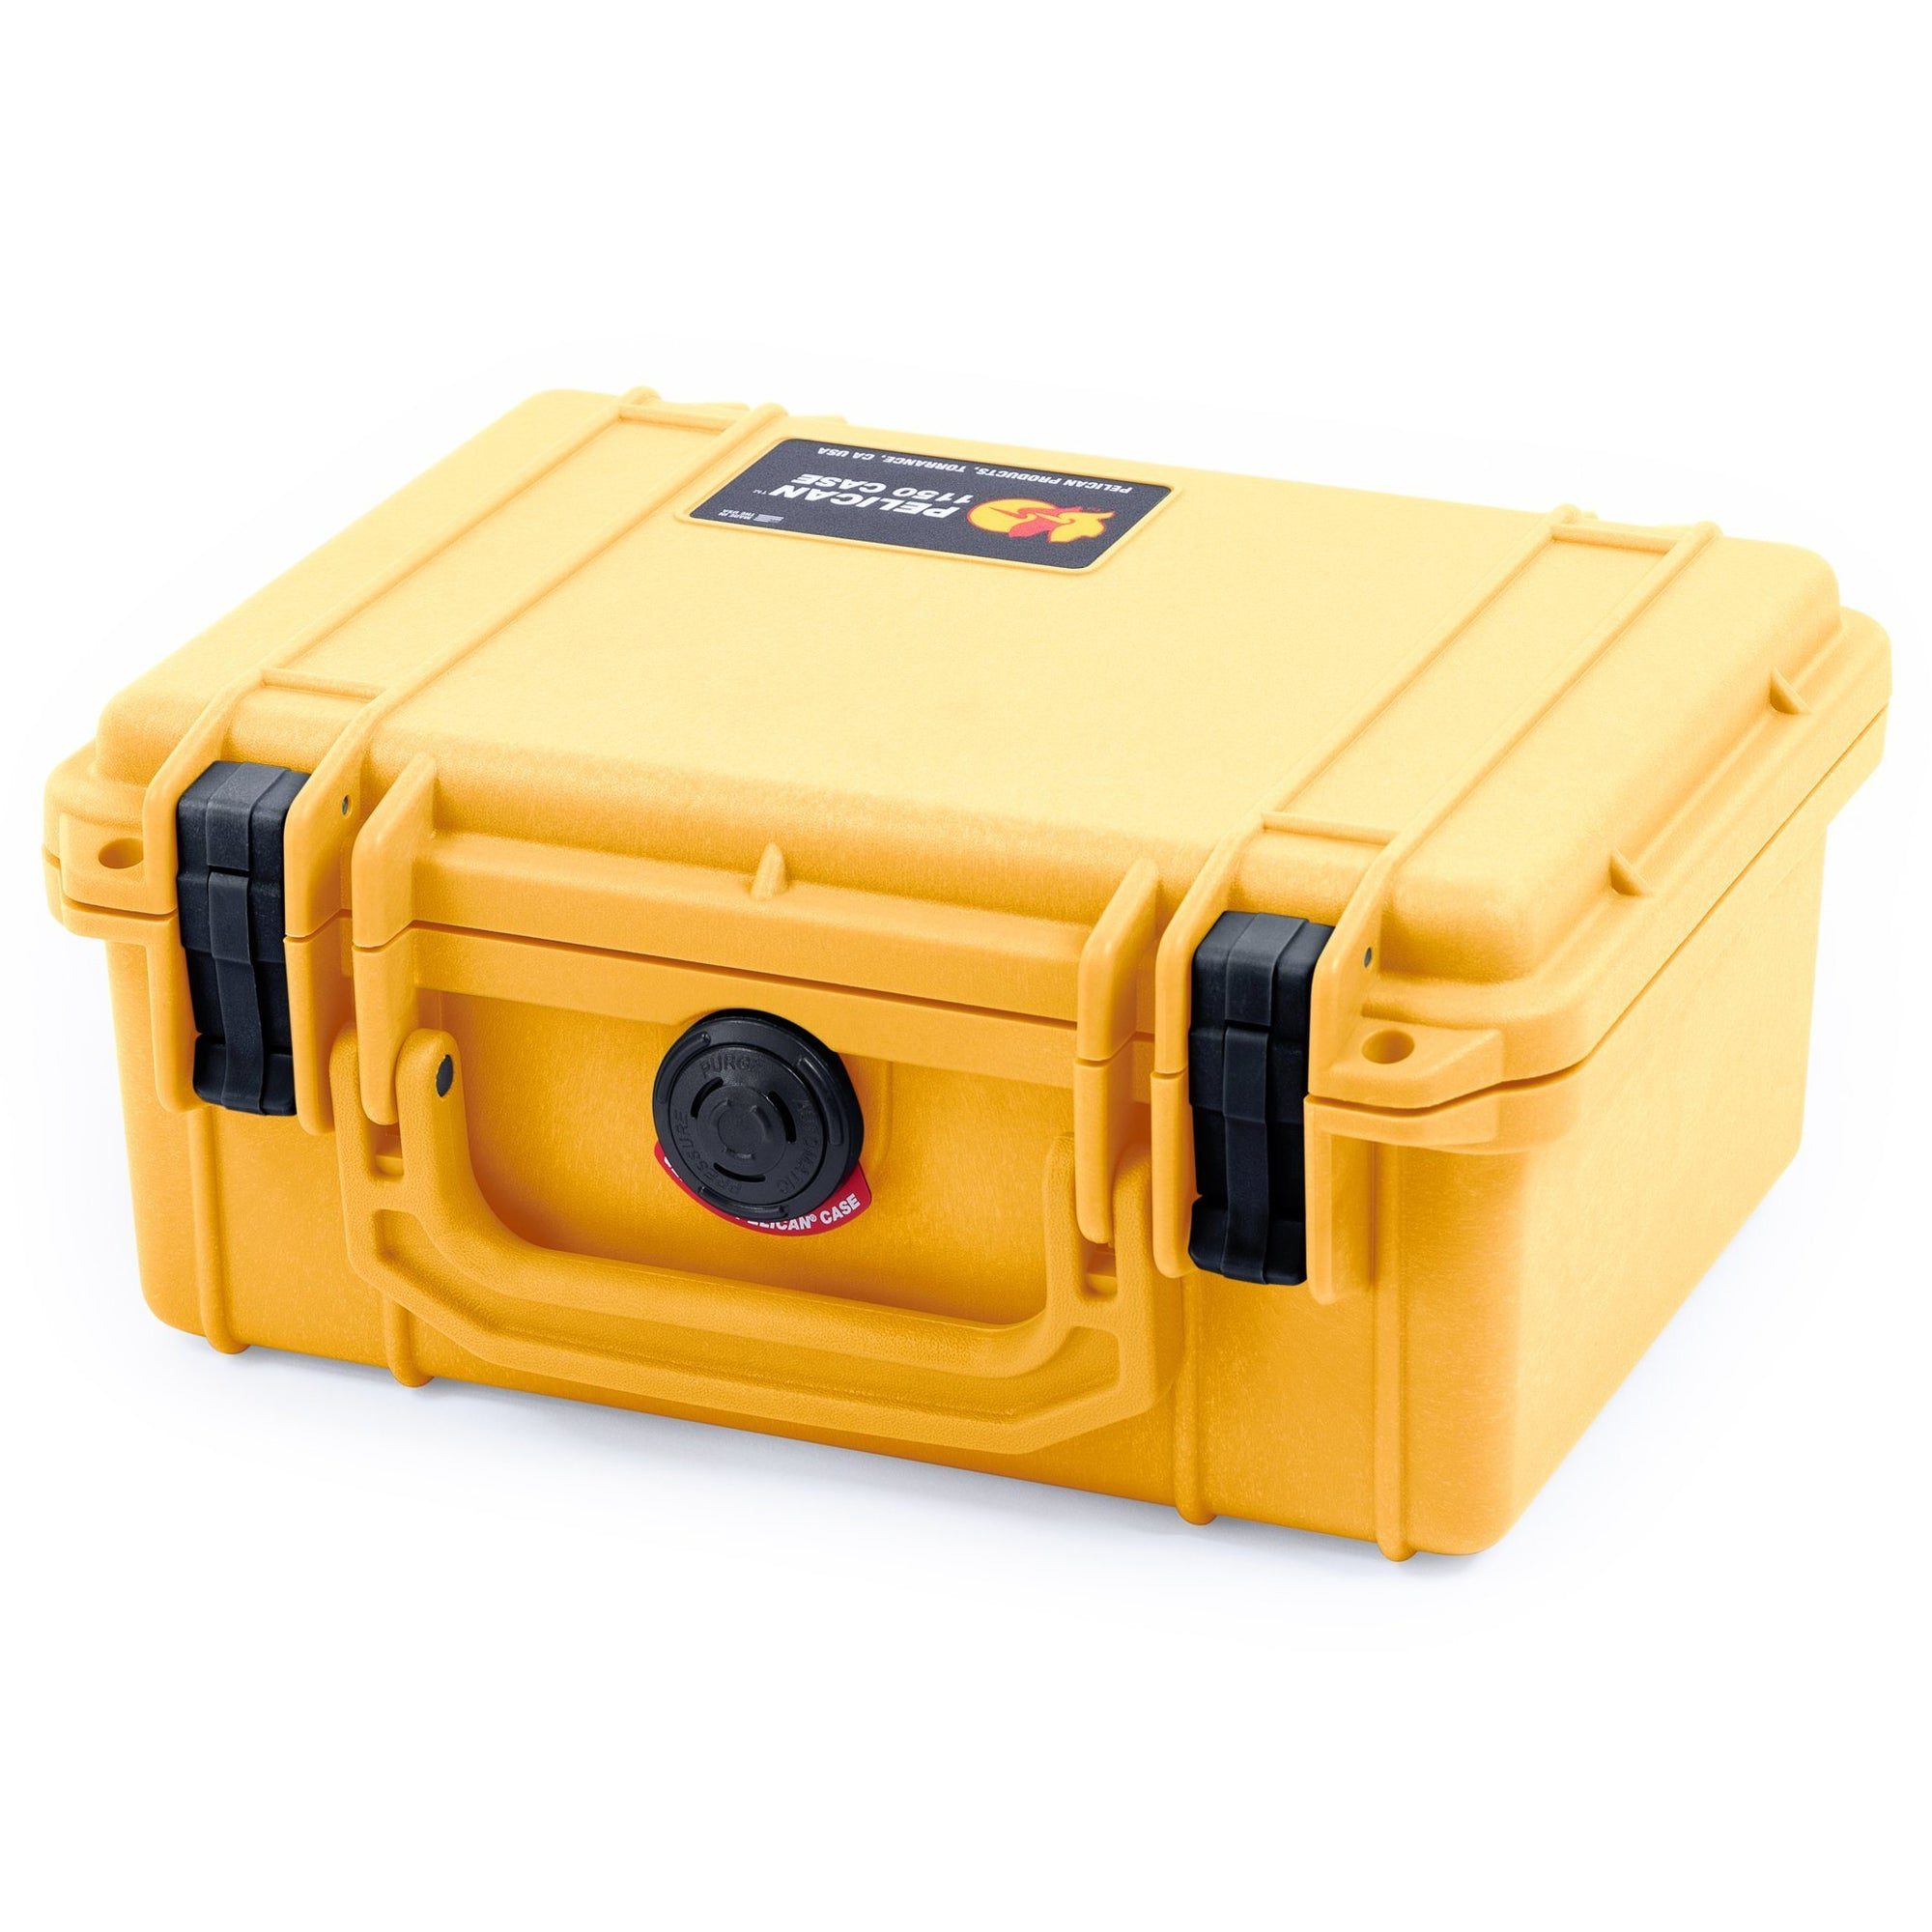 Pelican 1150 Case, Yellow with Black Latches - Pelican Color Case